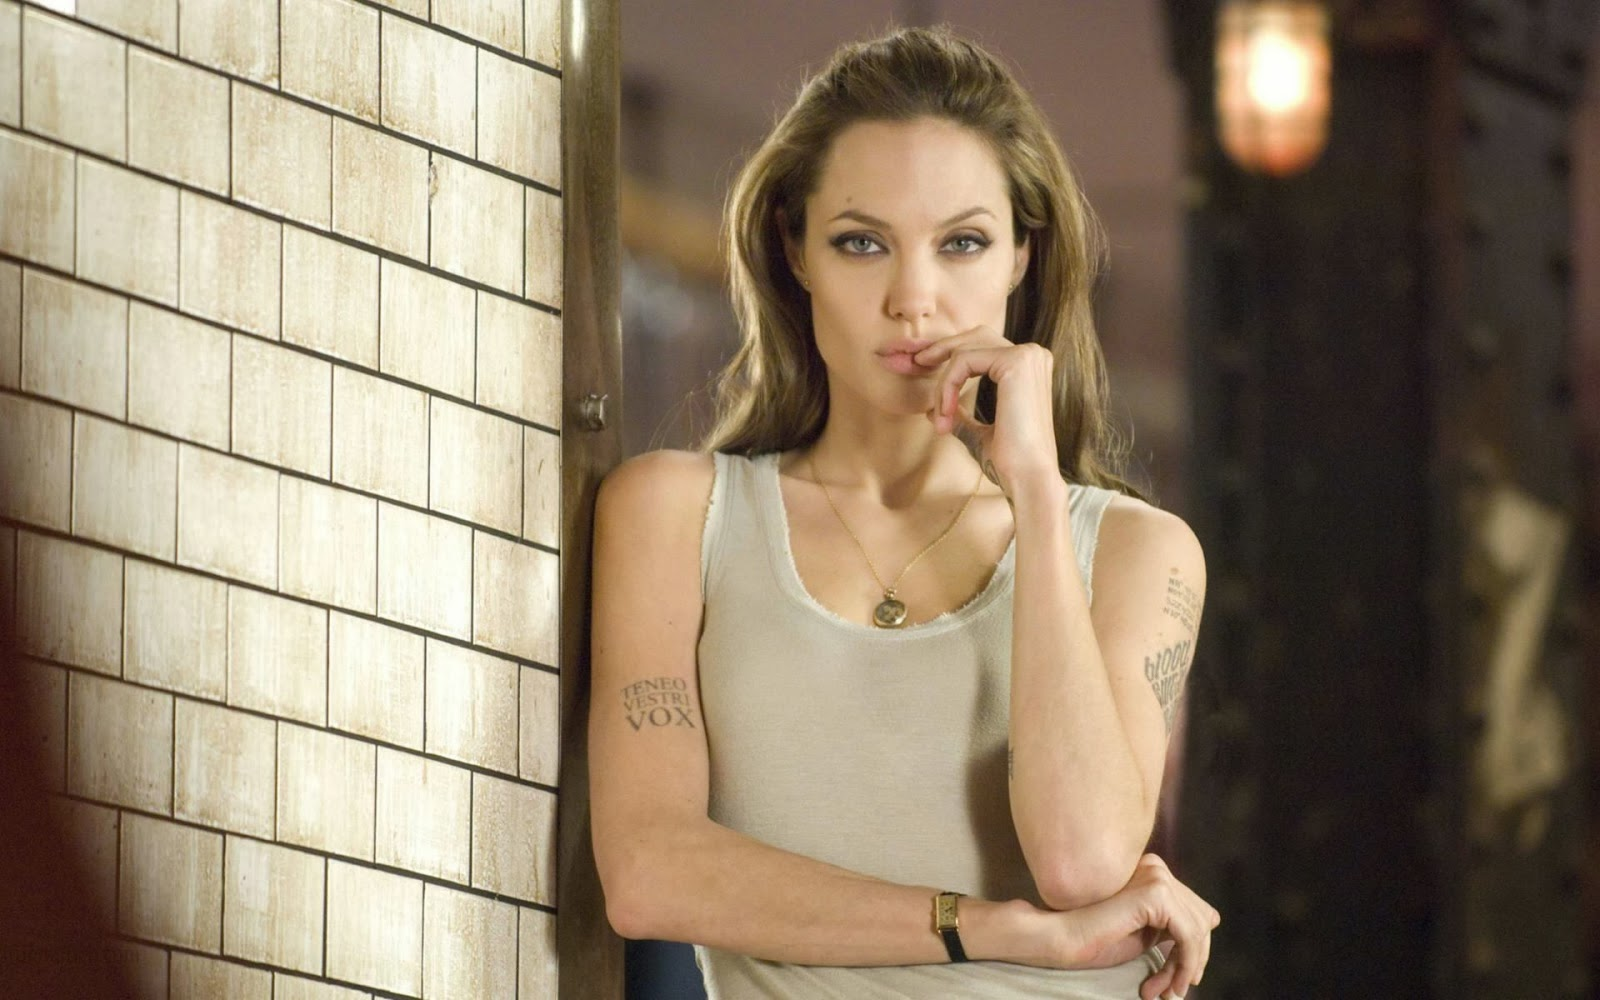 Angelina Jolie in Naughty Mood Wallpaper